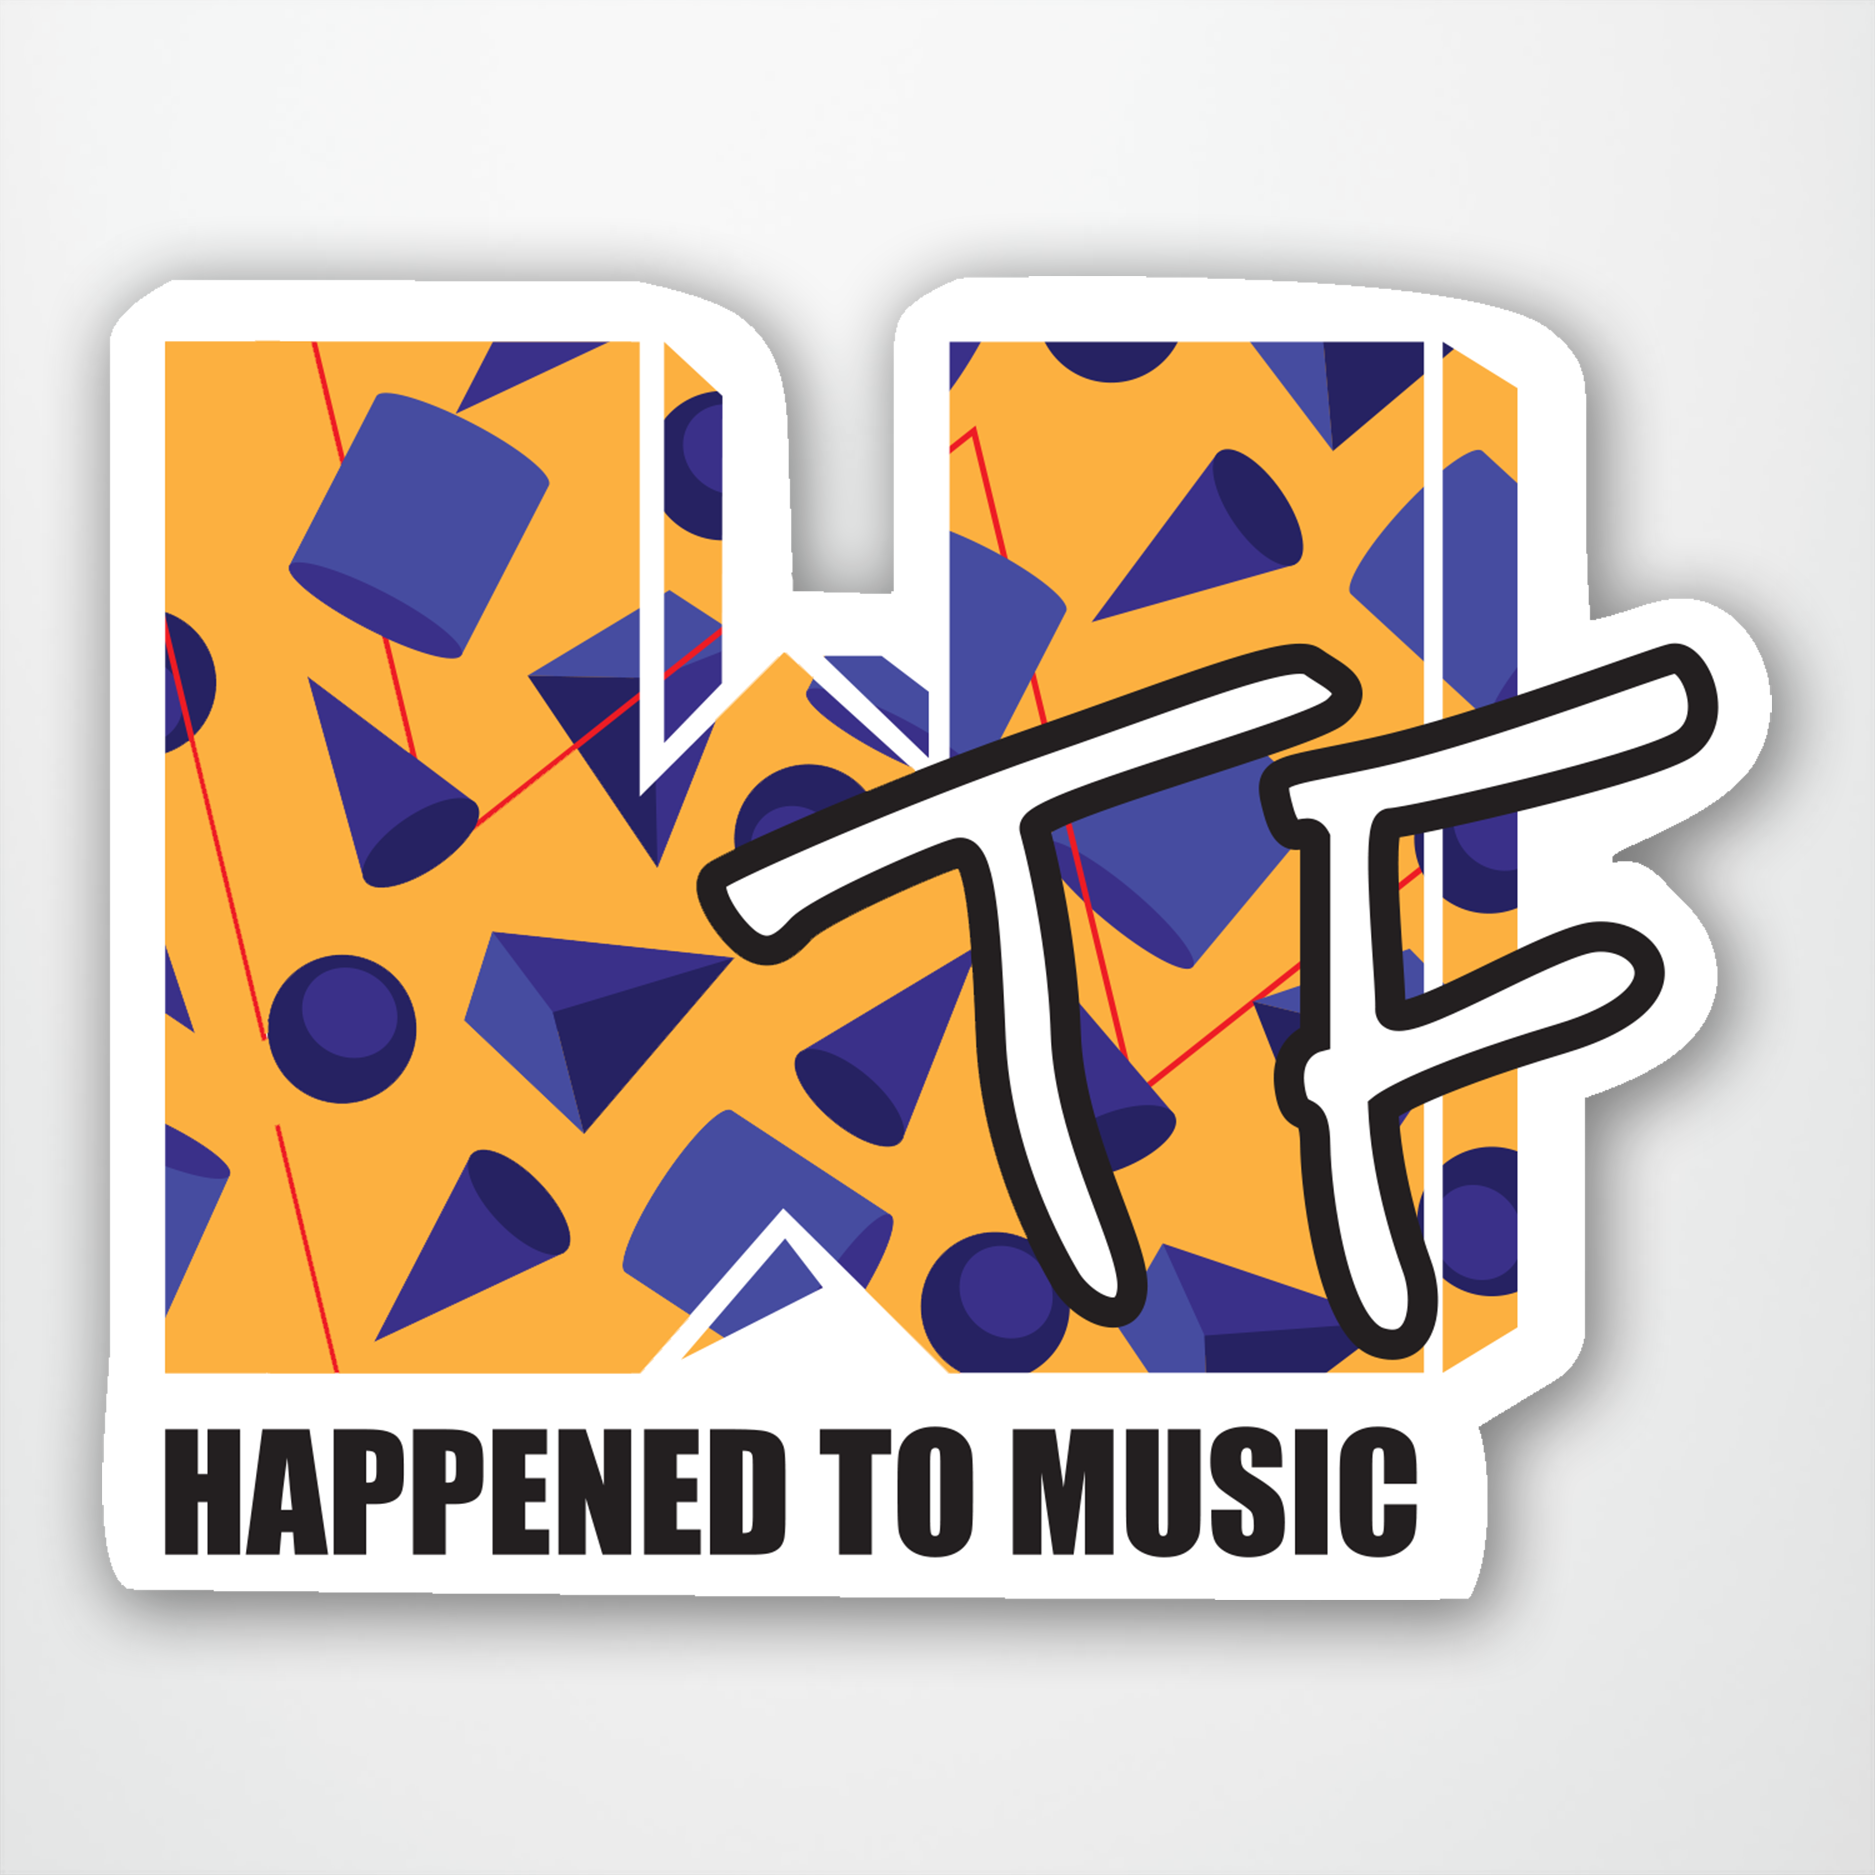 WTF Happened to Music image